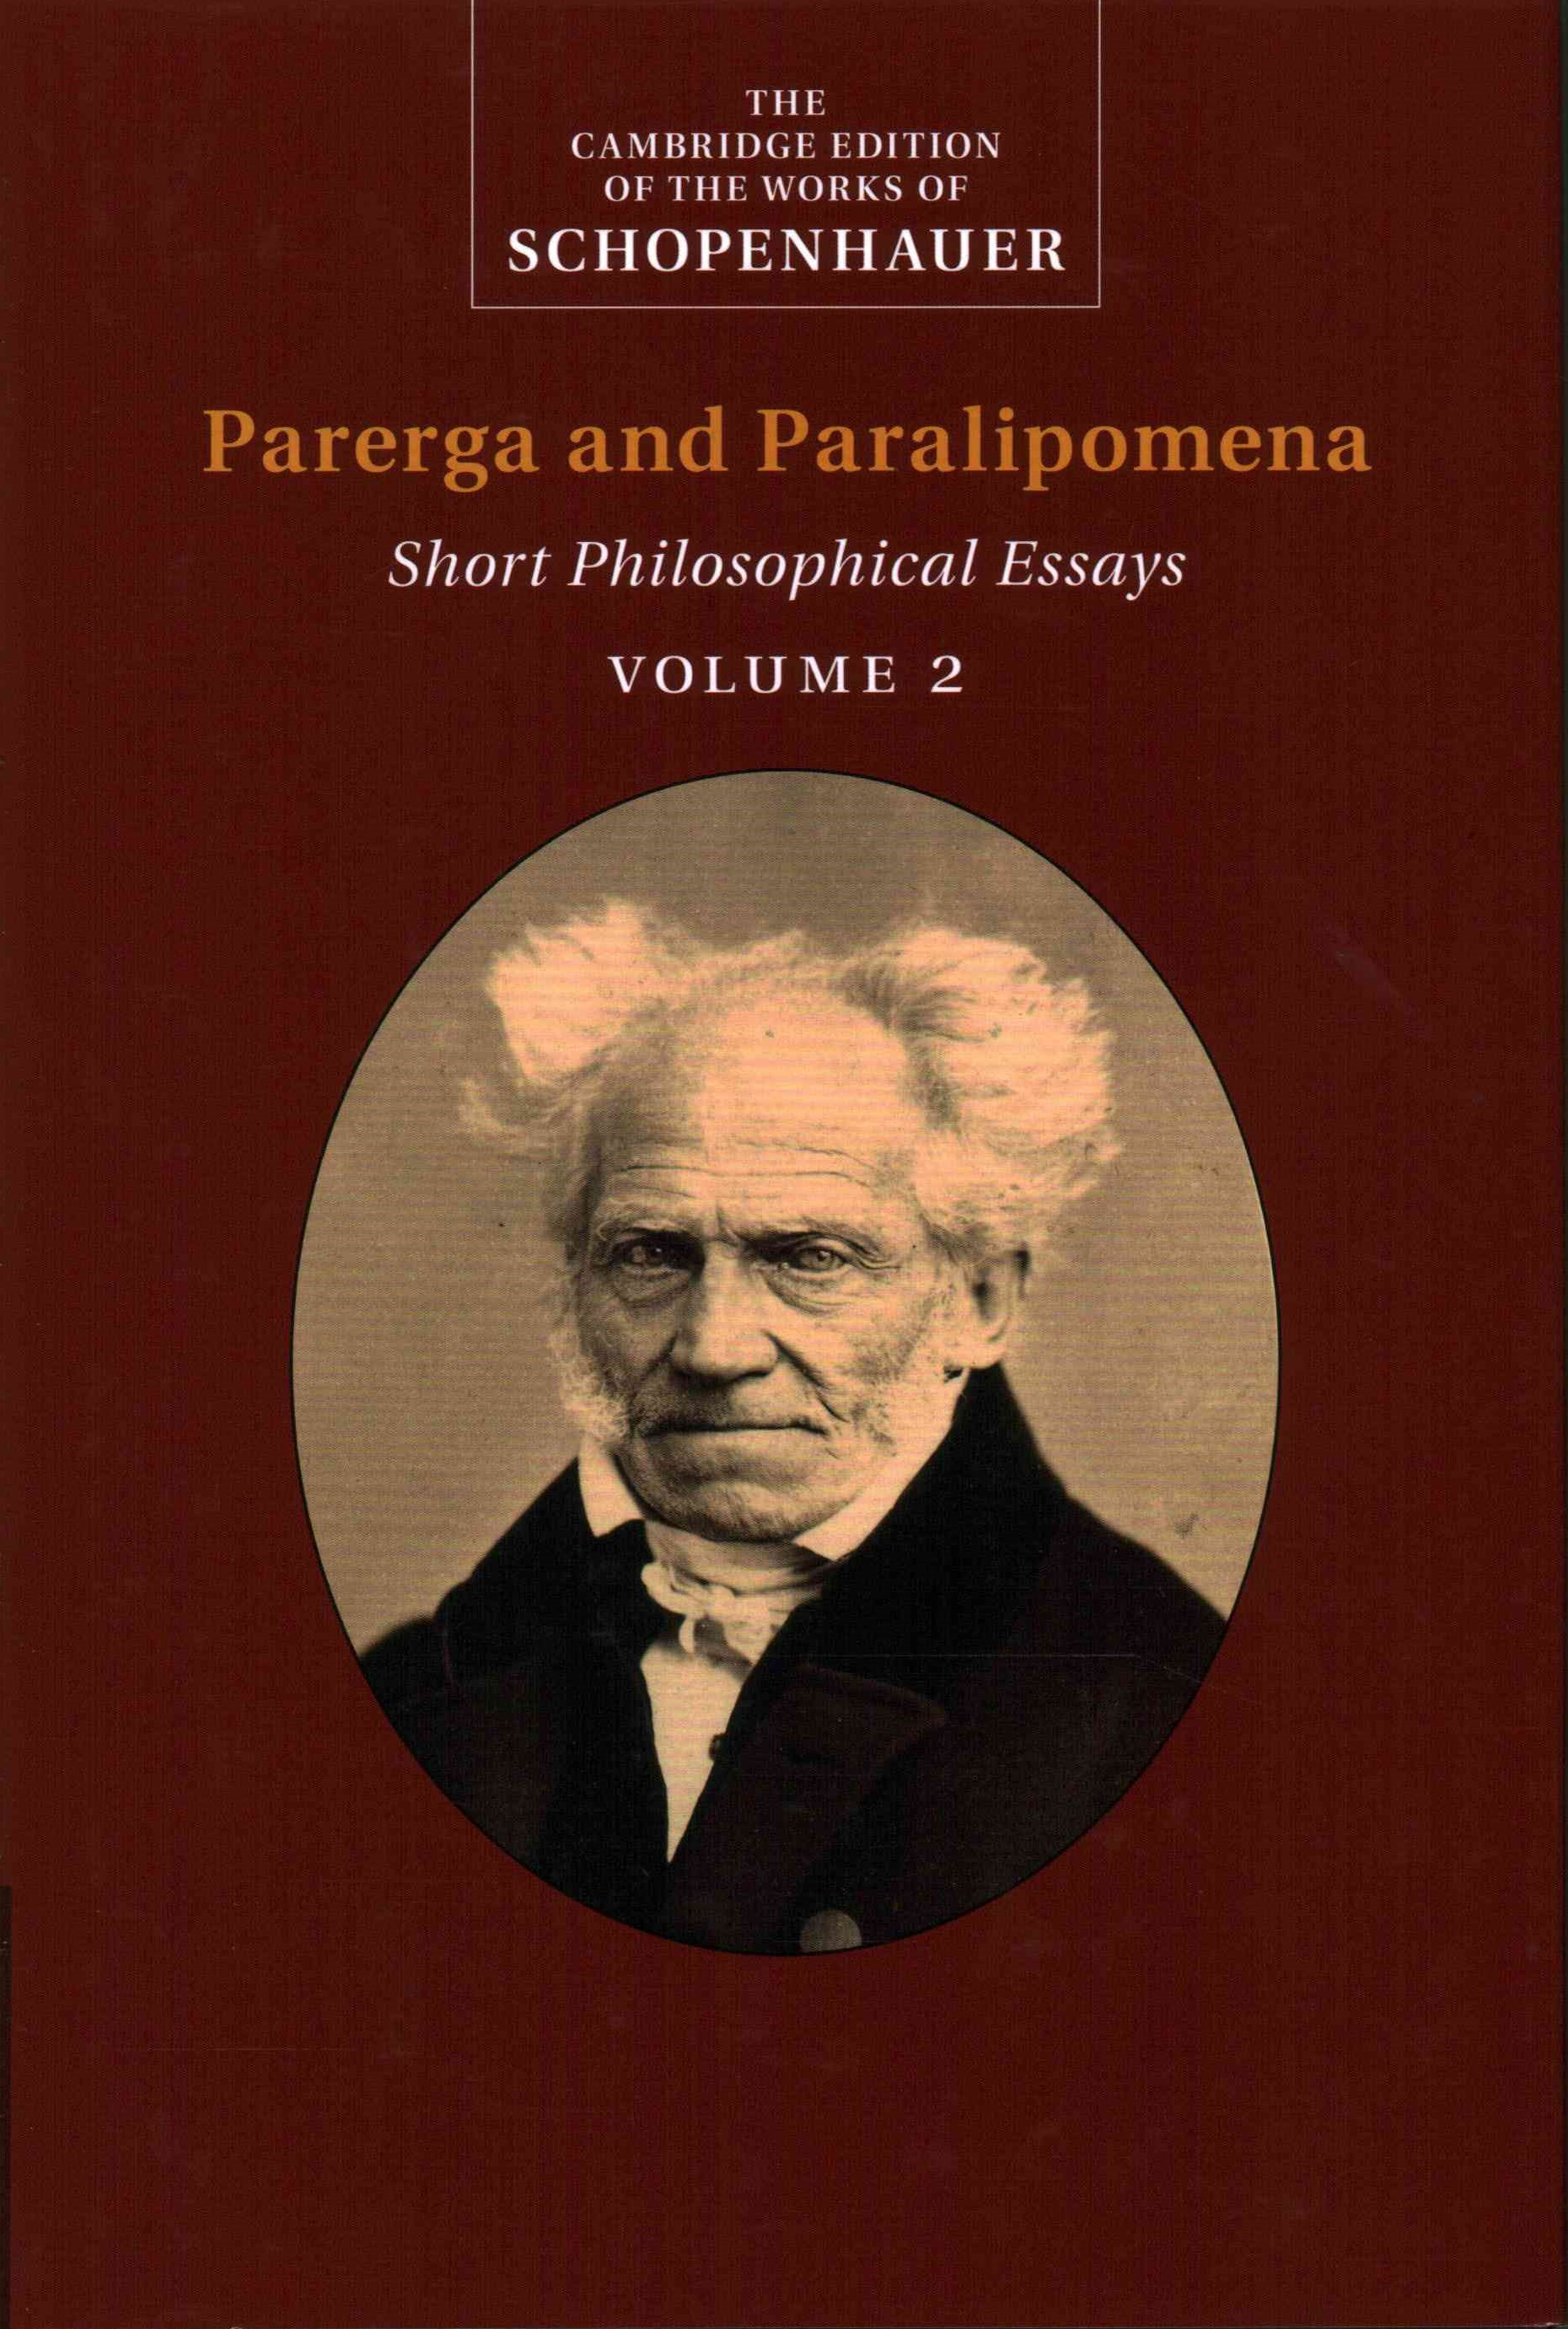 Schopenhauer: Parerga and Paralipomena: Volume 2